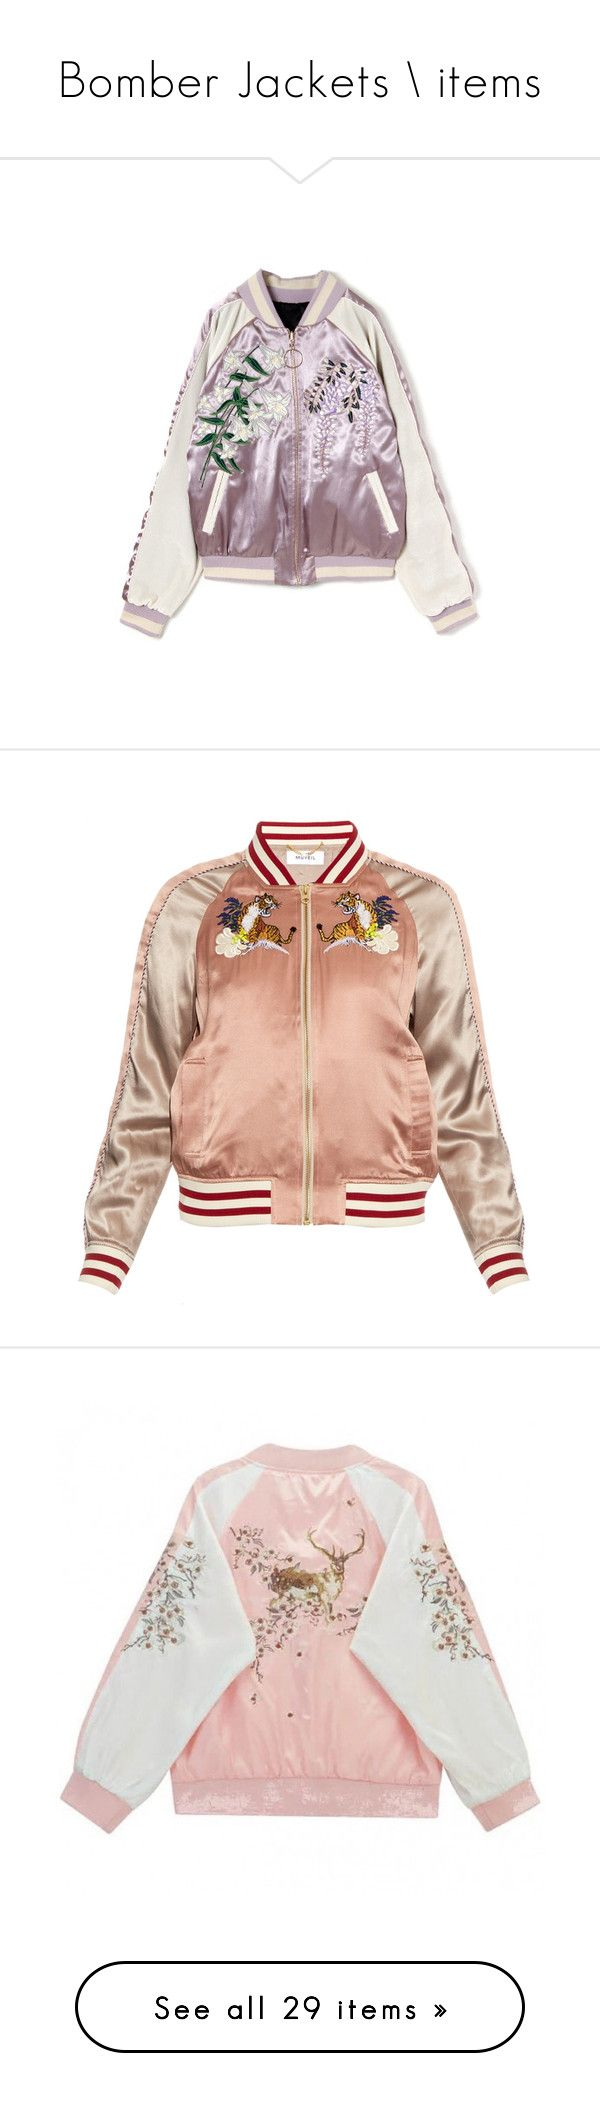 """Bomber Jackets \\ items"" by kahla-robyn ❤ liked on Polyvore featuring outerwear, jackets, tops, bomber, bomber jacket, blouson jacket, bomber style jacket, flight bomber jacket, silk bomber jacket and 80s jackets"